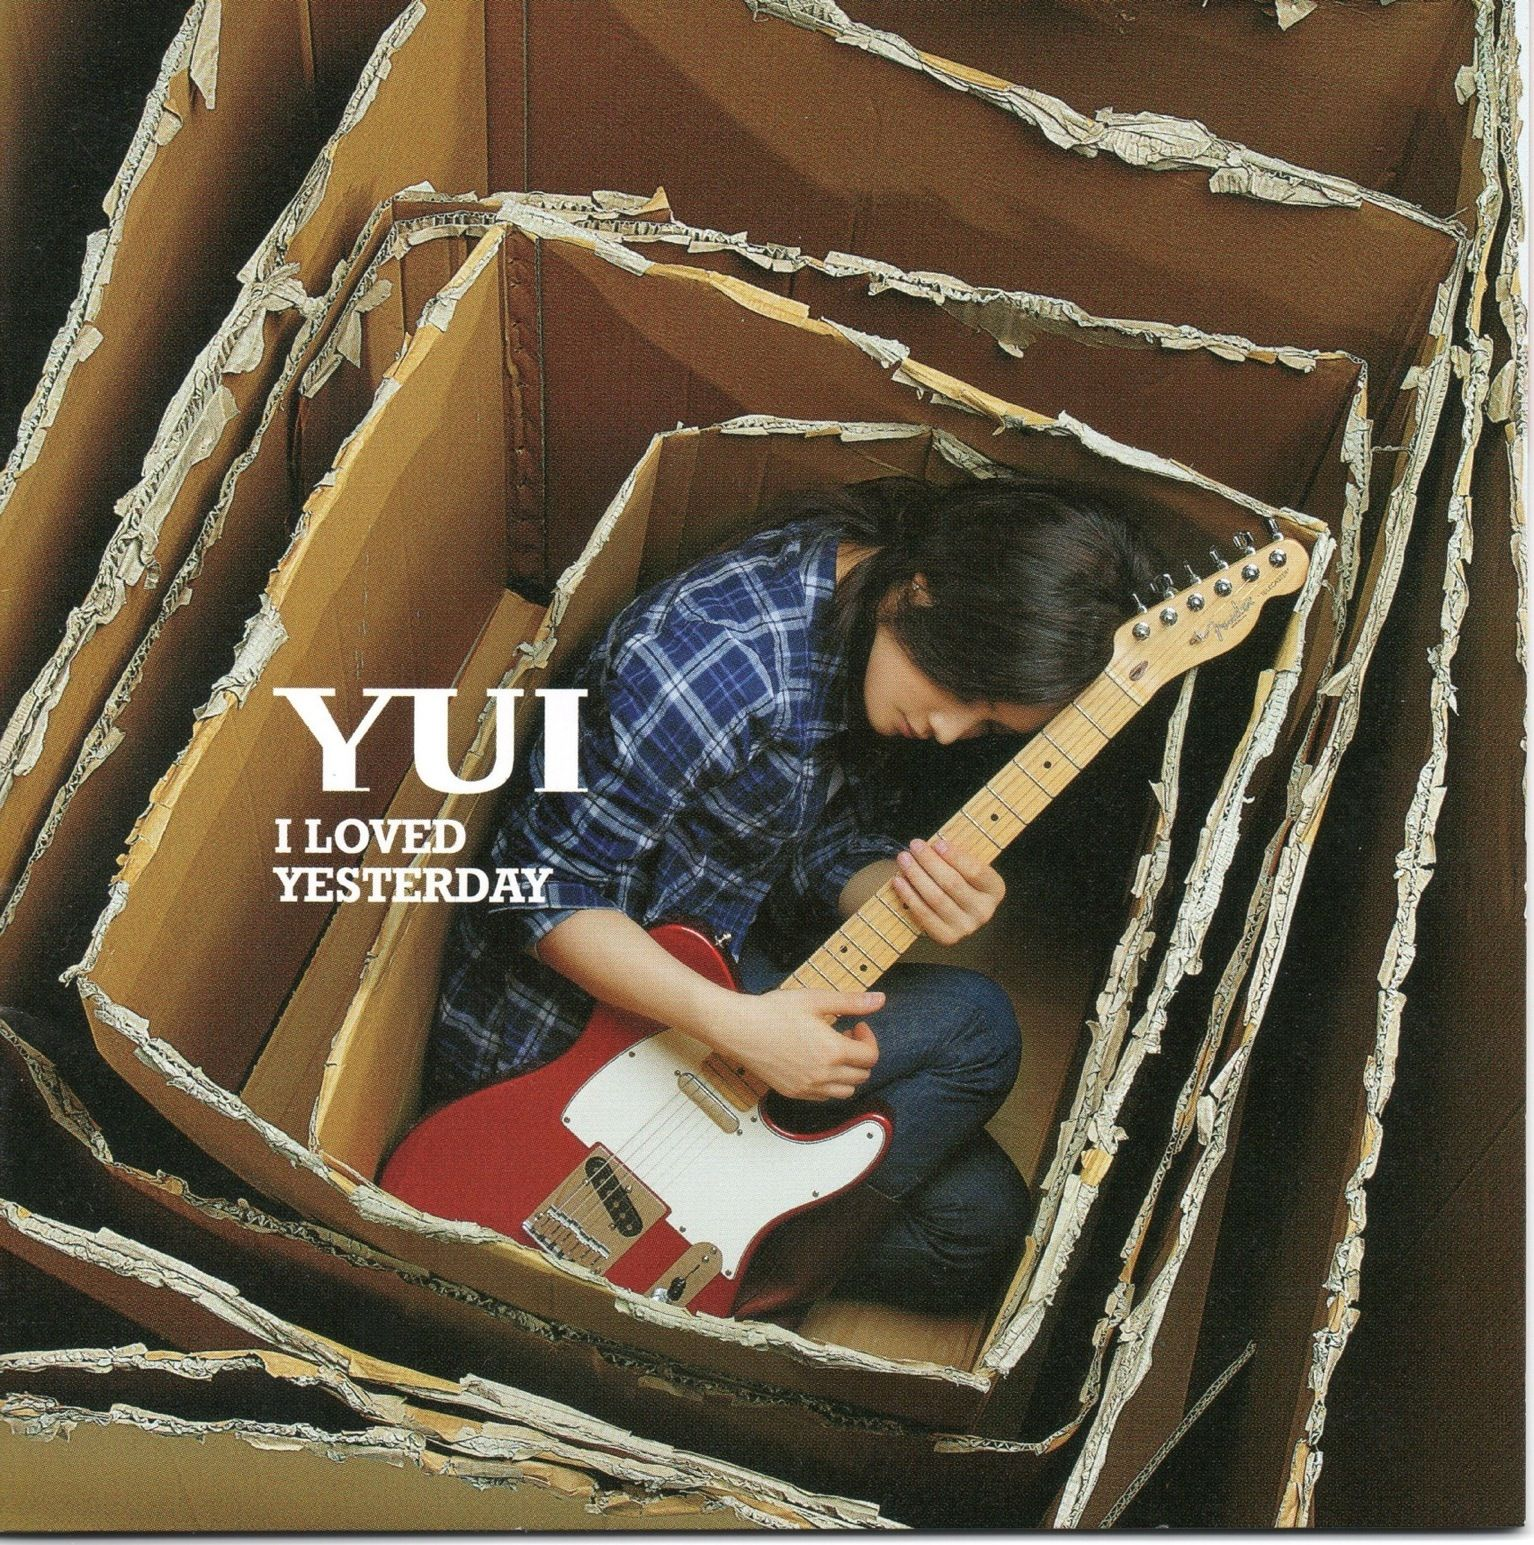 20170218.01.25 YUI - I Loved Yesterday cover 2.jpg